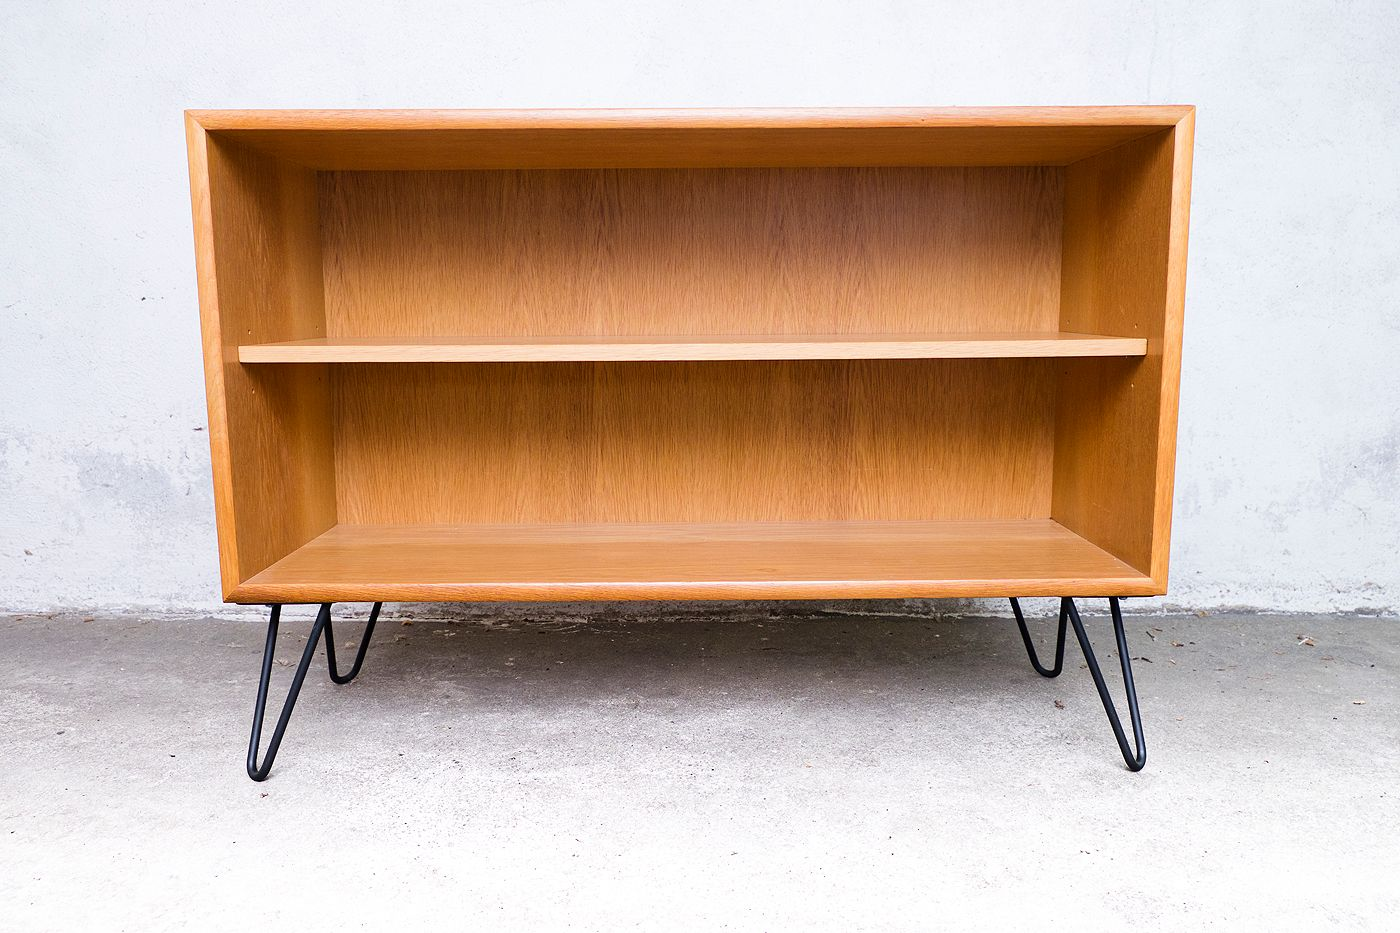 mid century german oak shelves from wk m bel 1960s for sale at pamono. Black Bedroom Furniture Sets. Home Design Ideas